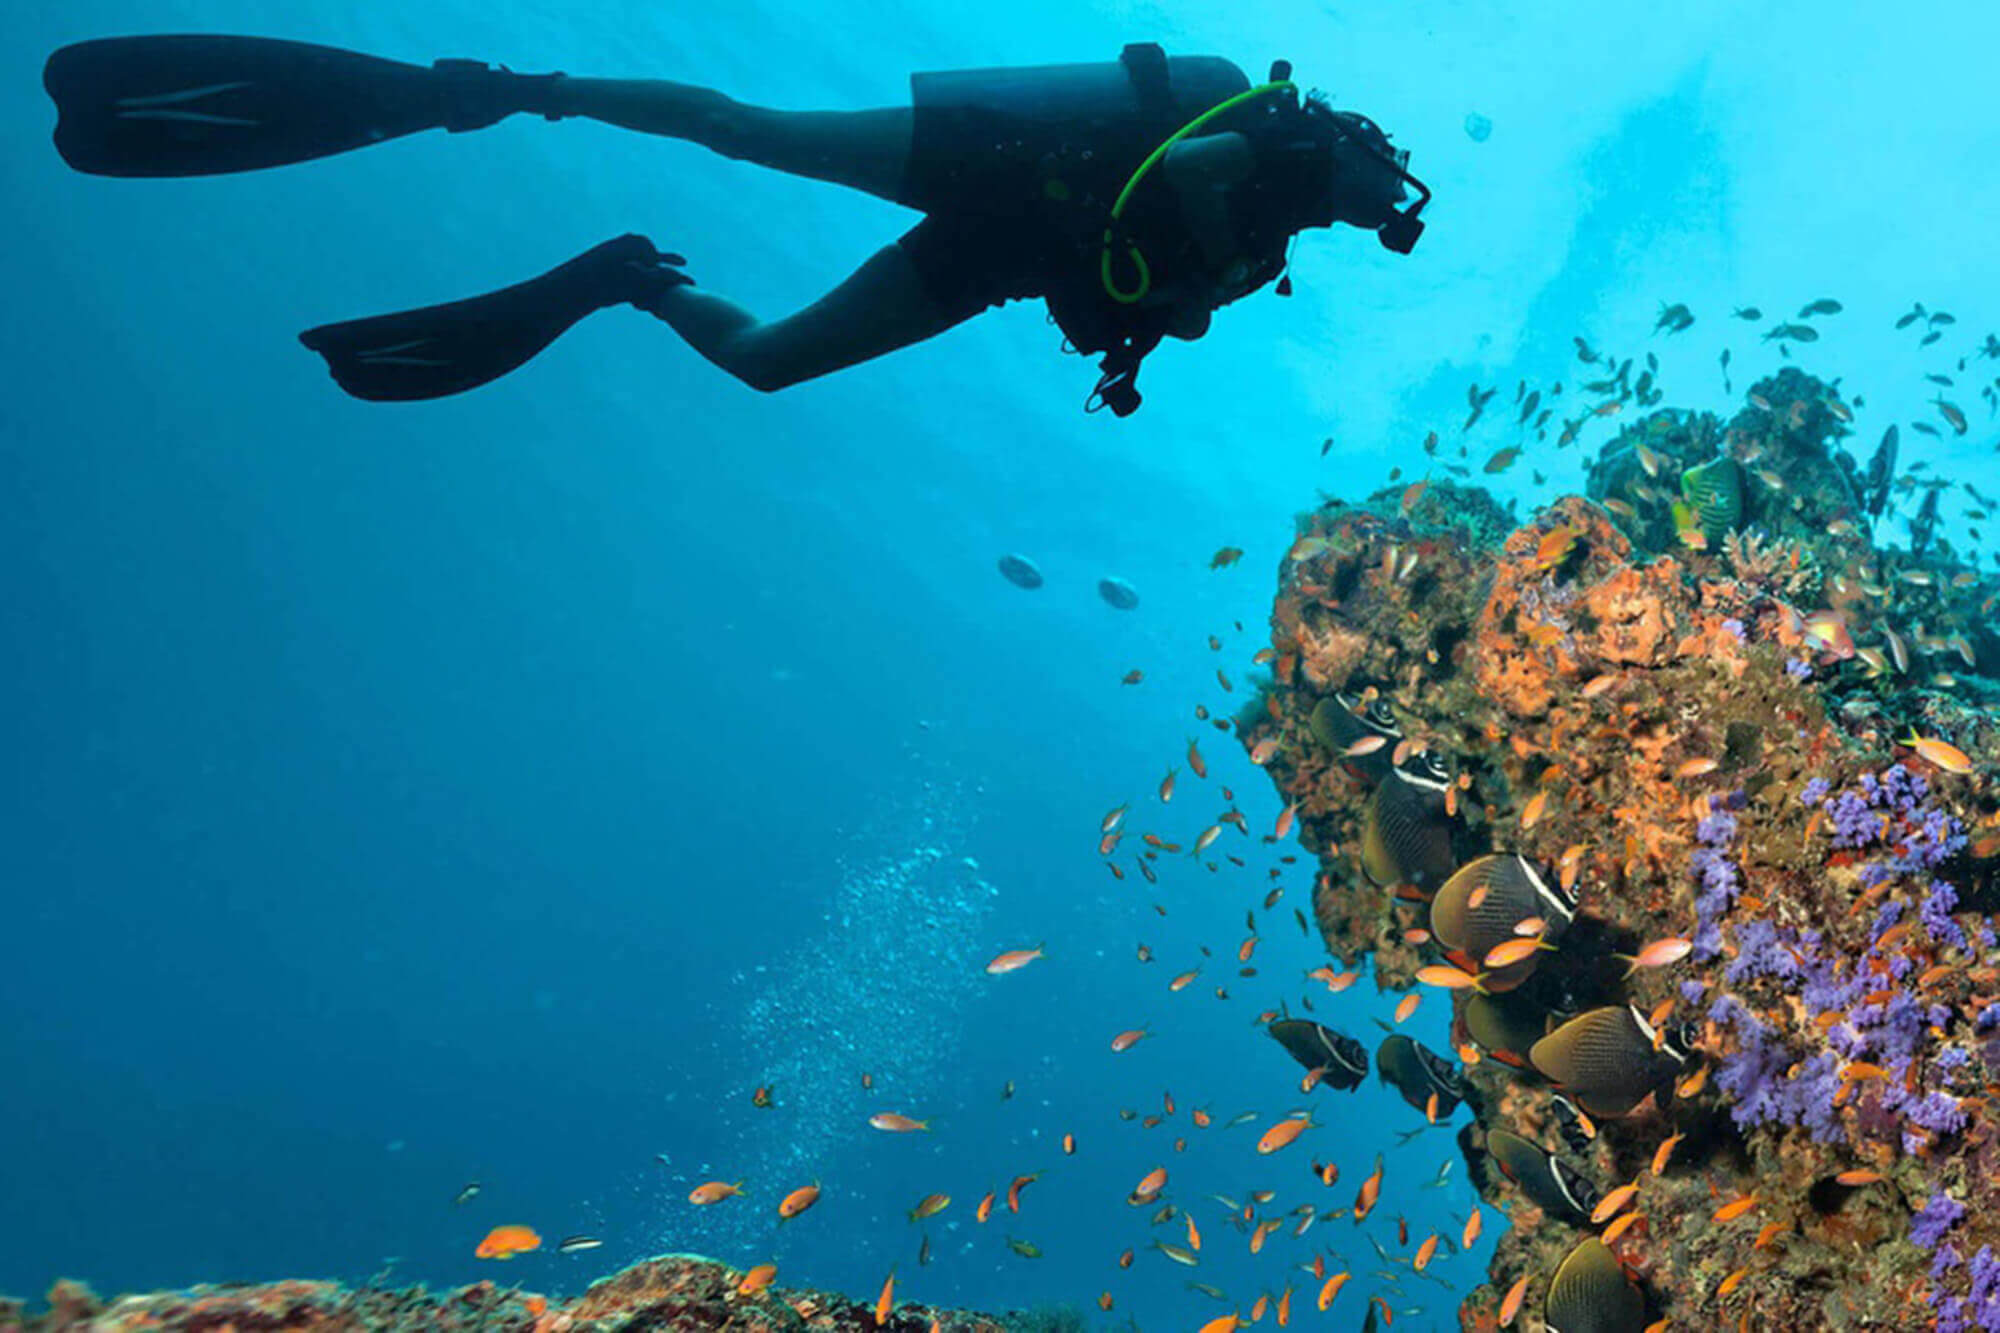 A diver swimming around corals and fishes